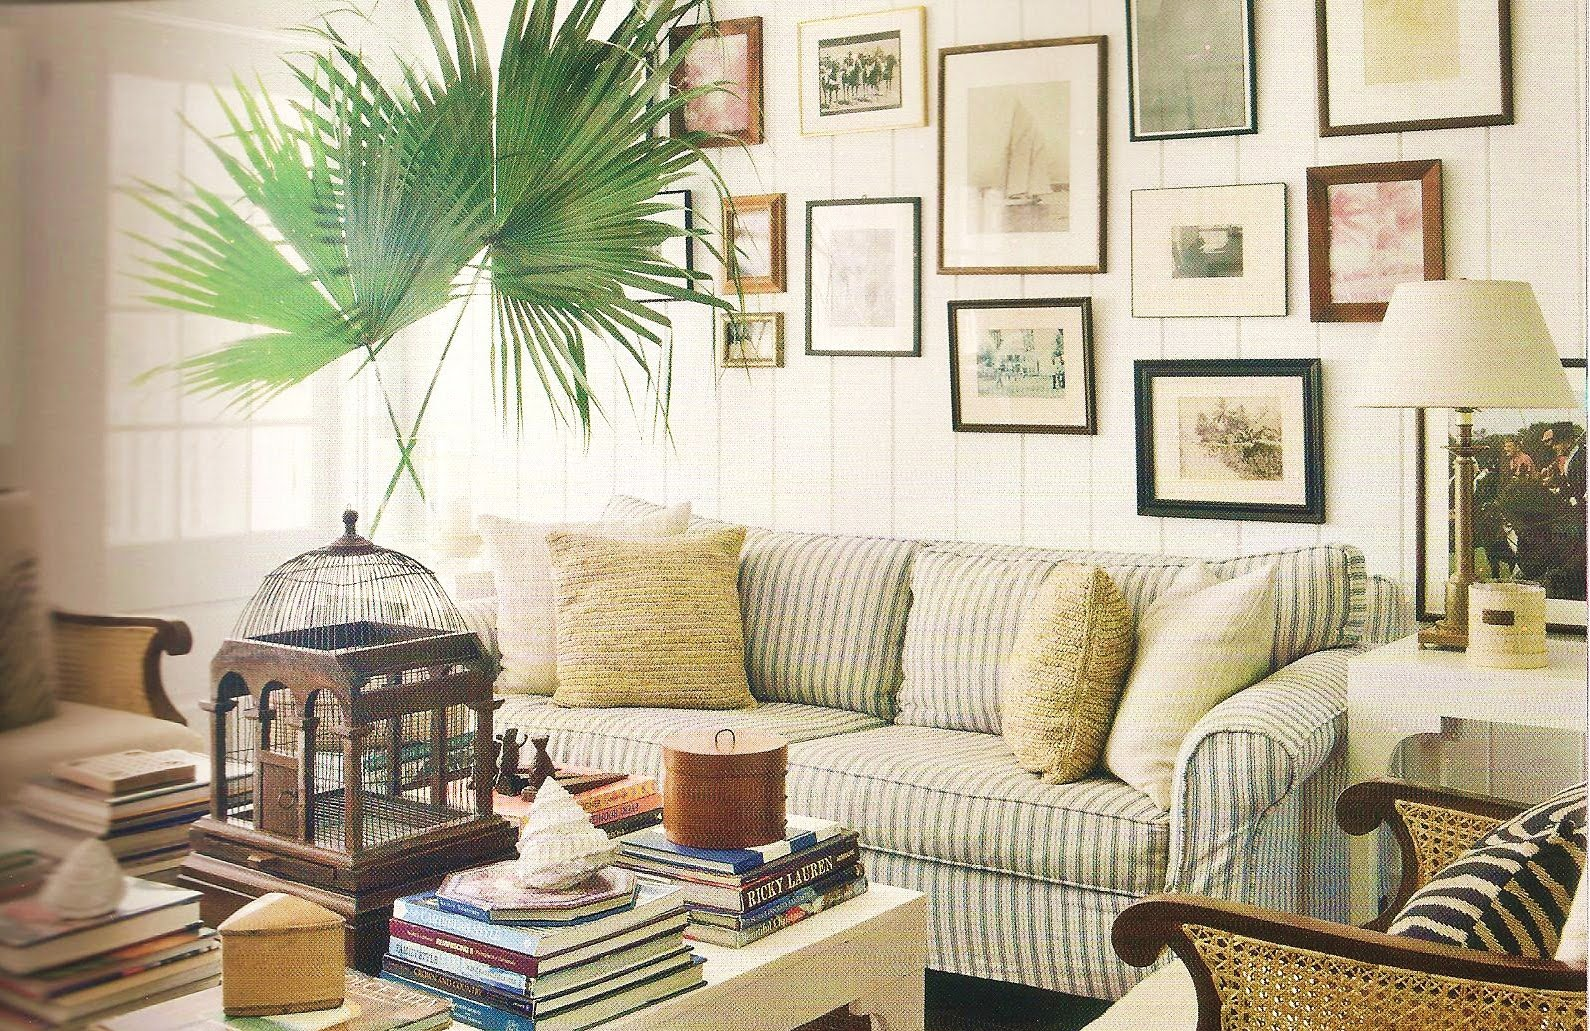 India Hicks Interiors | Home Decoration Club